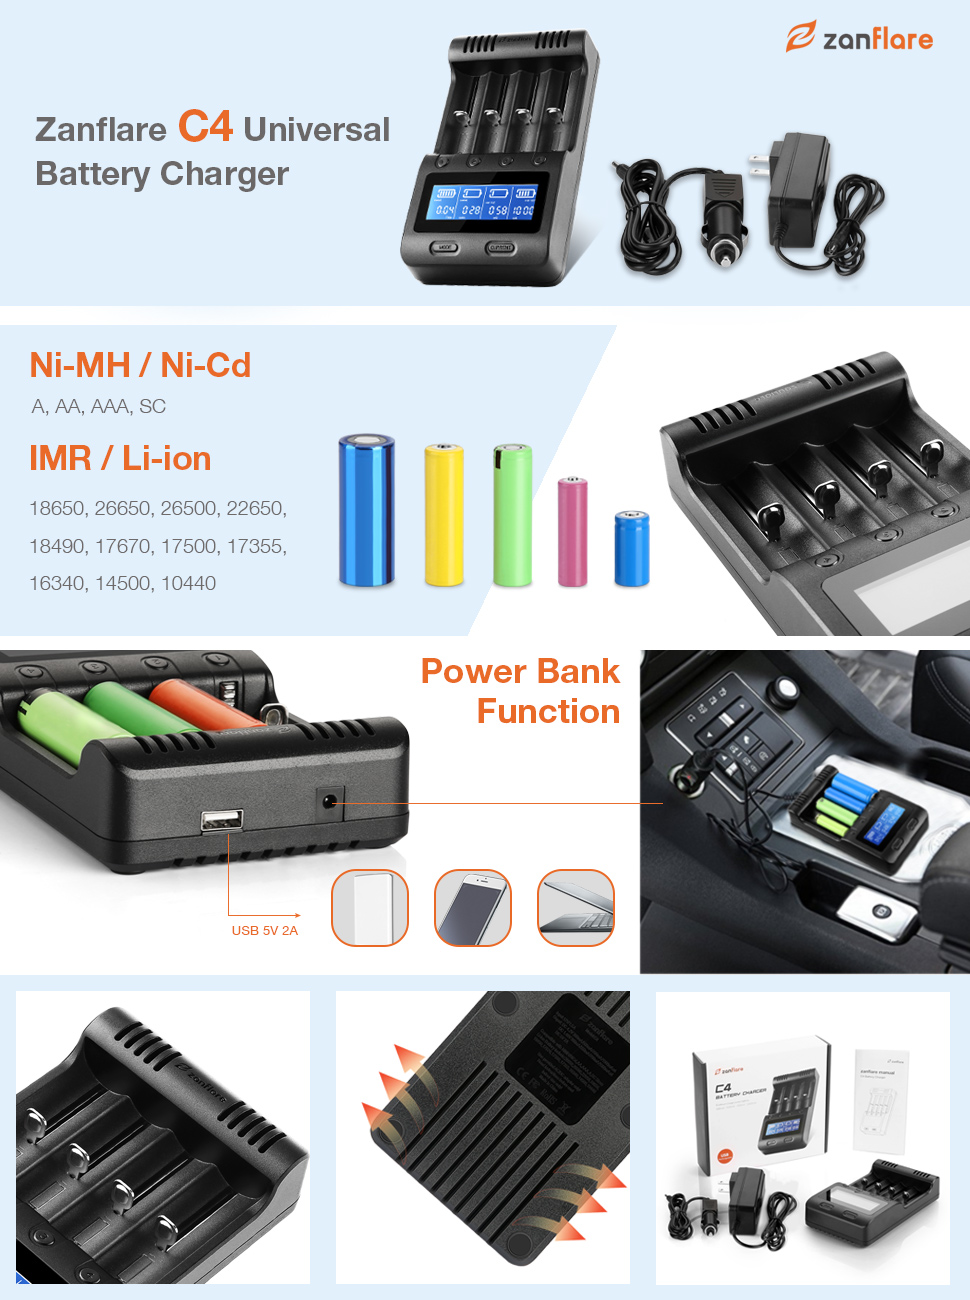 Amazon Com Lcd Display Speedy Universal Battery Charger With Car Adapter Zanflare C4 Smart Charger For Rechargeable Batteries Ni Mh Ni Cd A Aa Aaa Sc Li Ion 18650 26650 26500 22650 18490 17670 17500 17355 Electronics